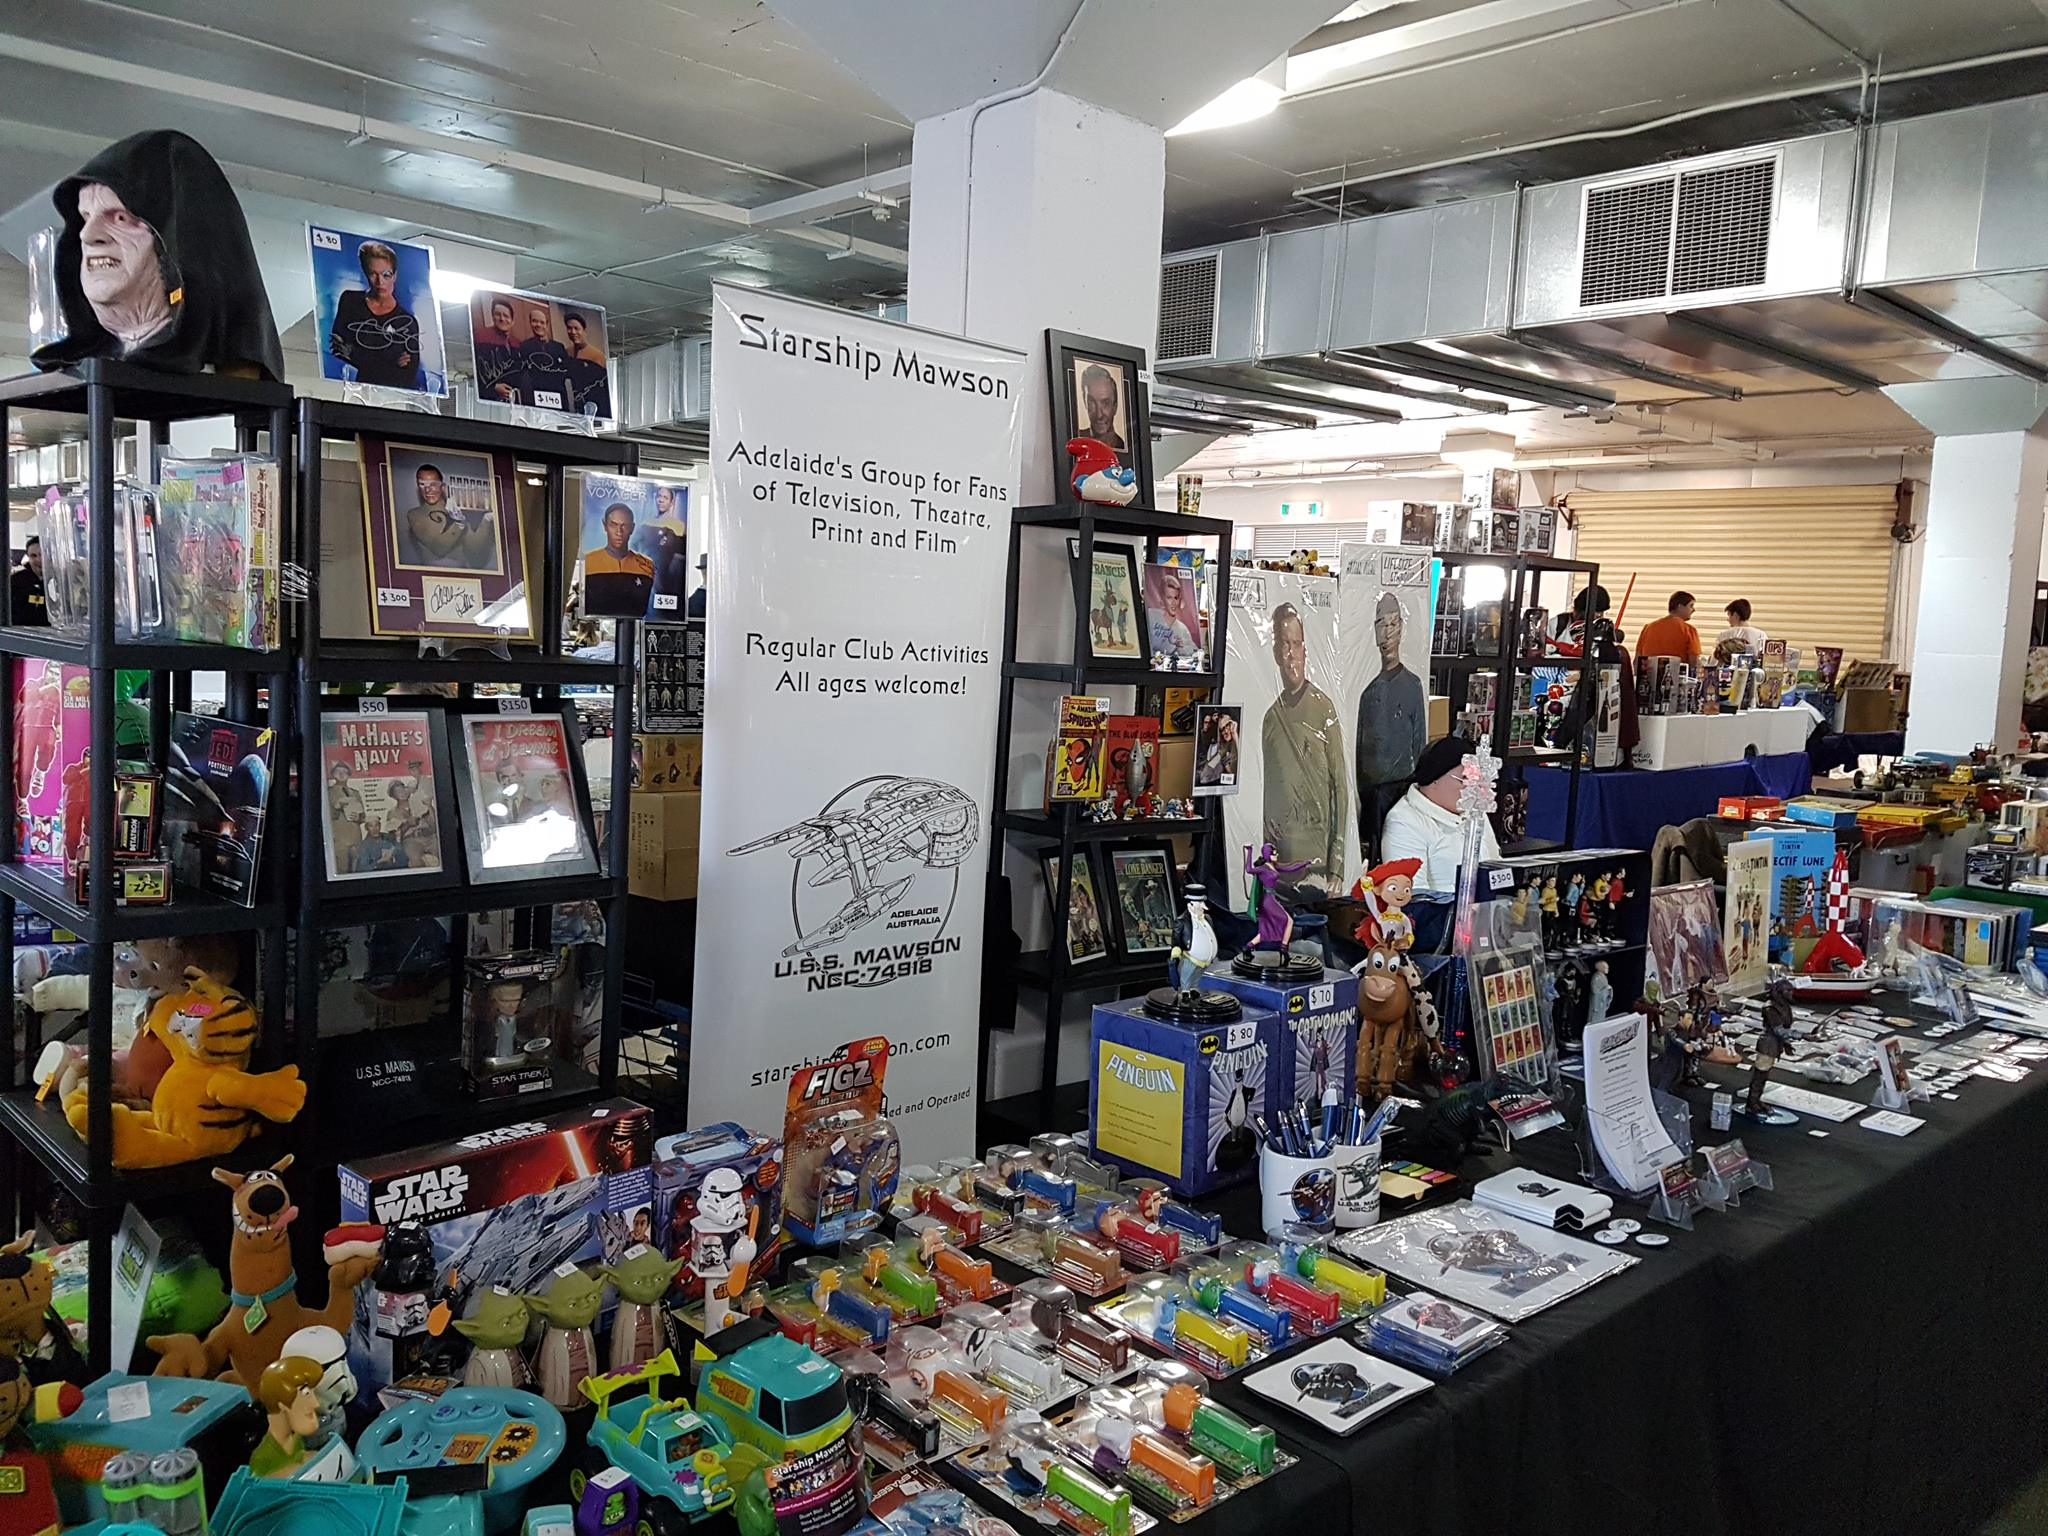 June 2 and 3 - We had a most successful weekend of sales and promotion at the Mega Toy and Collectable Fair at the Adelaide Showgrounds. The weekend long event attracts collectors and dealers from all over Australia!